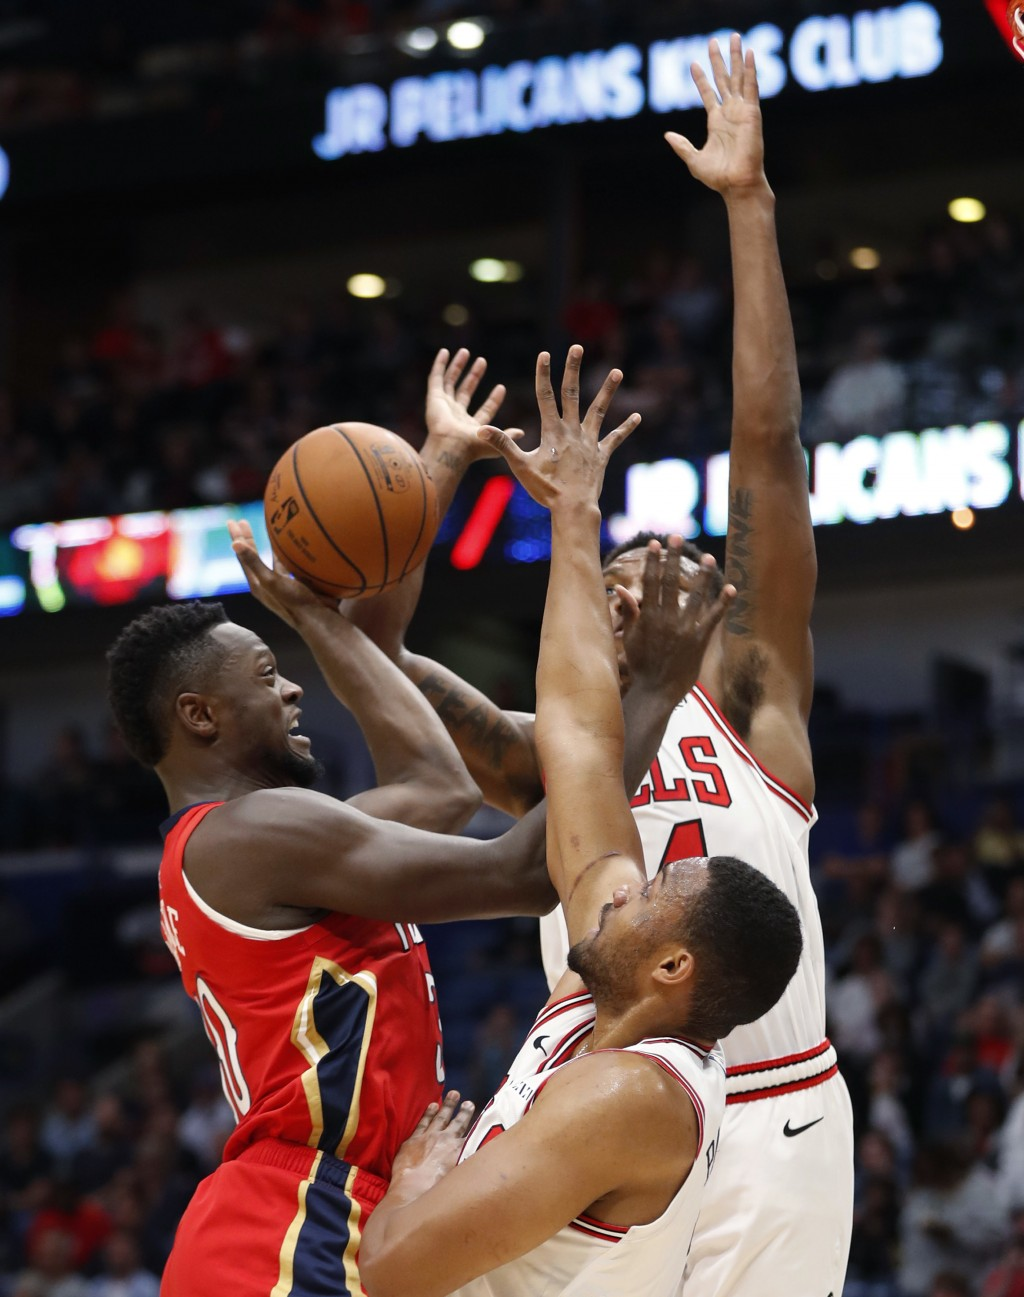 New Orleans Pelicans forward Julius Randle shoots against Chicago Bulls forward Wendell Carter Jr., top, and forward Jabari Parker during the first ha